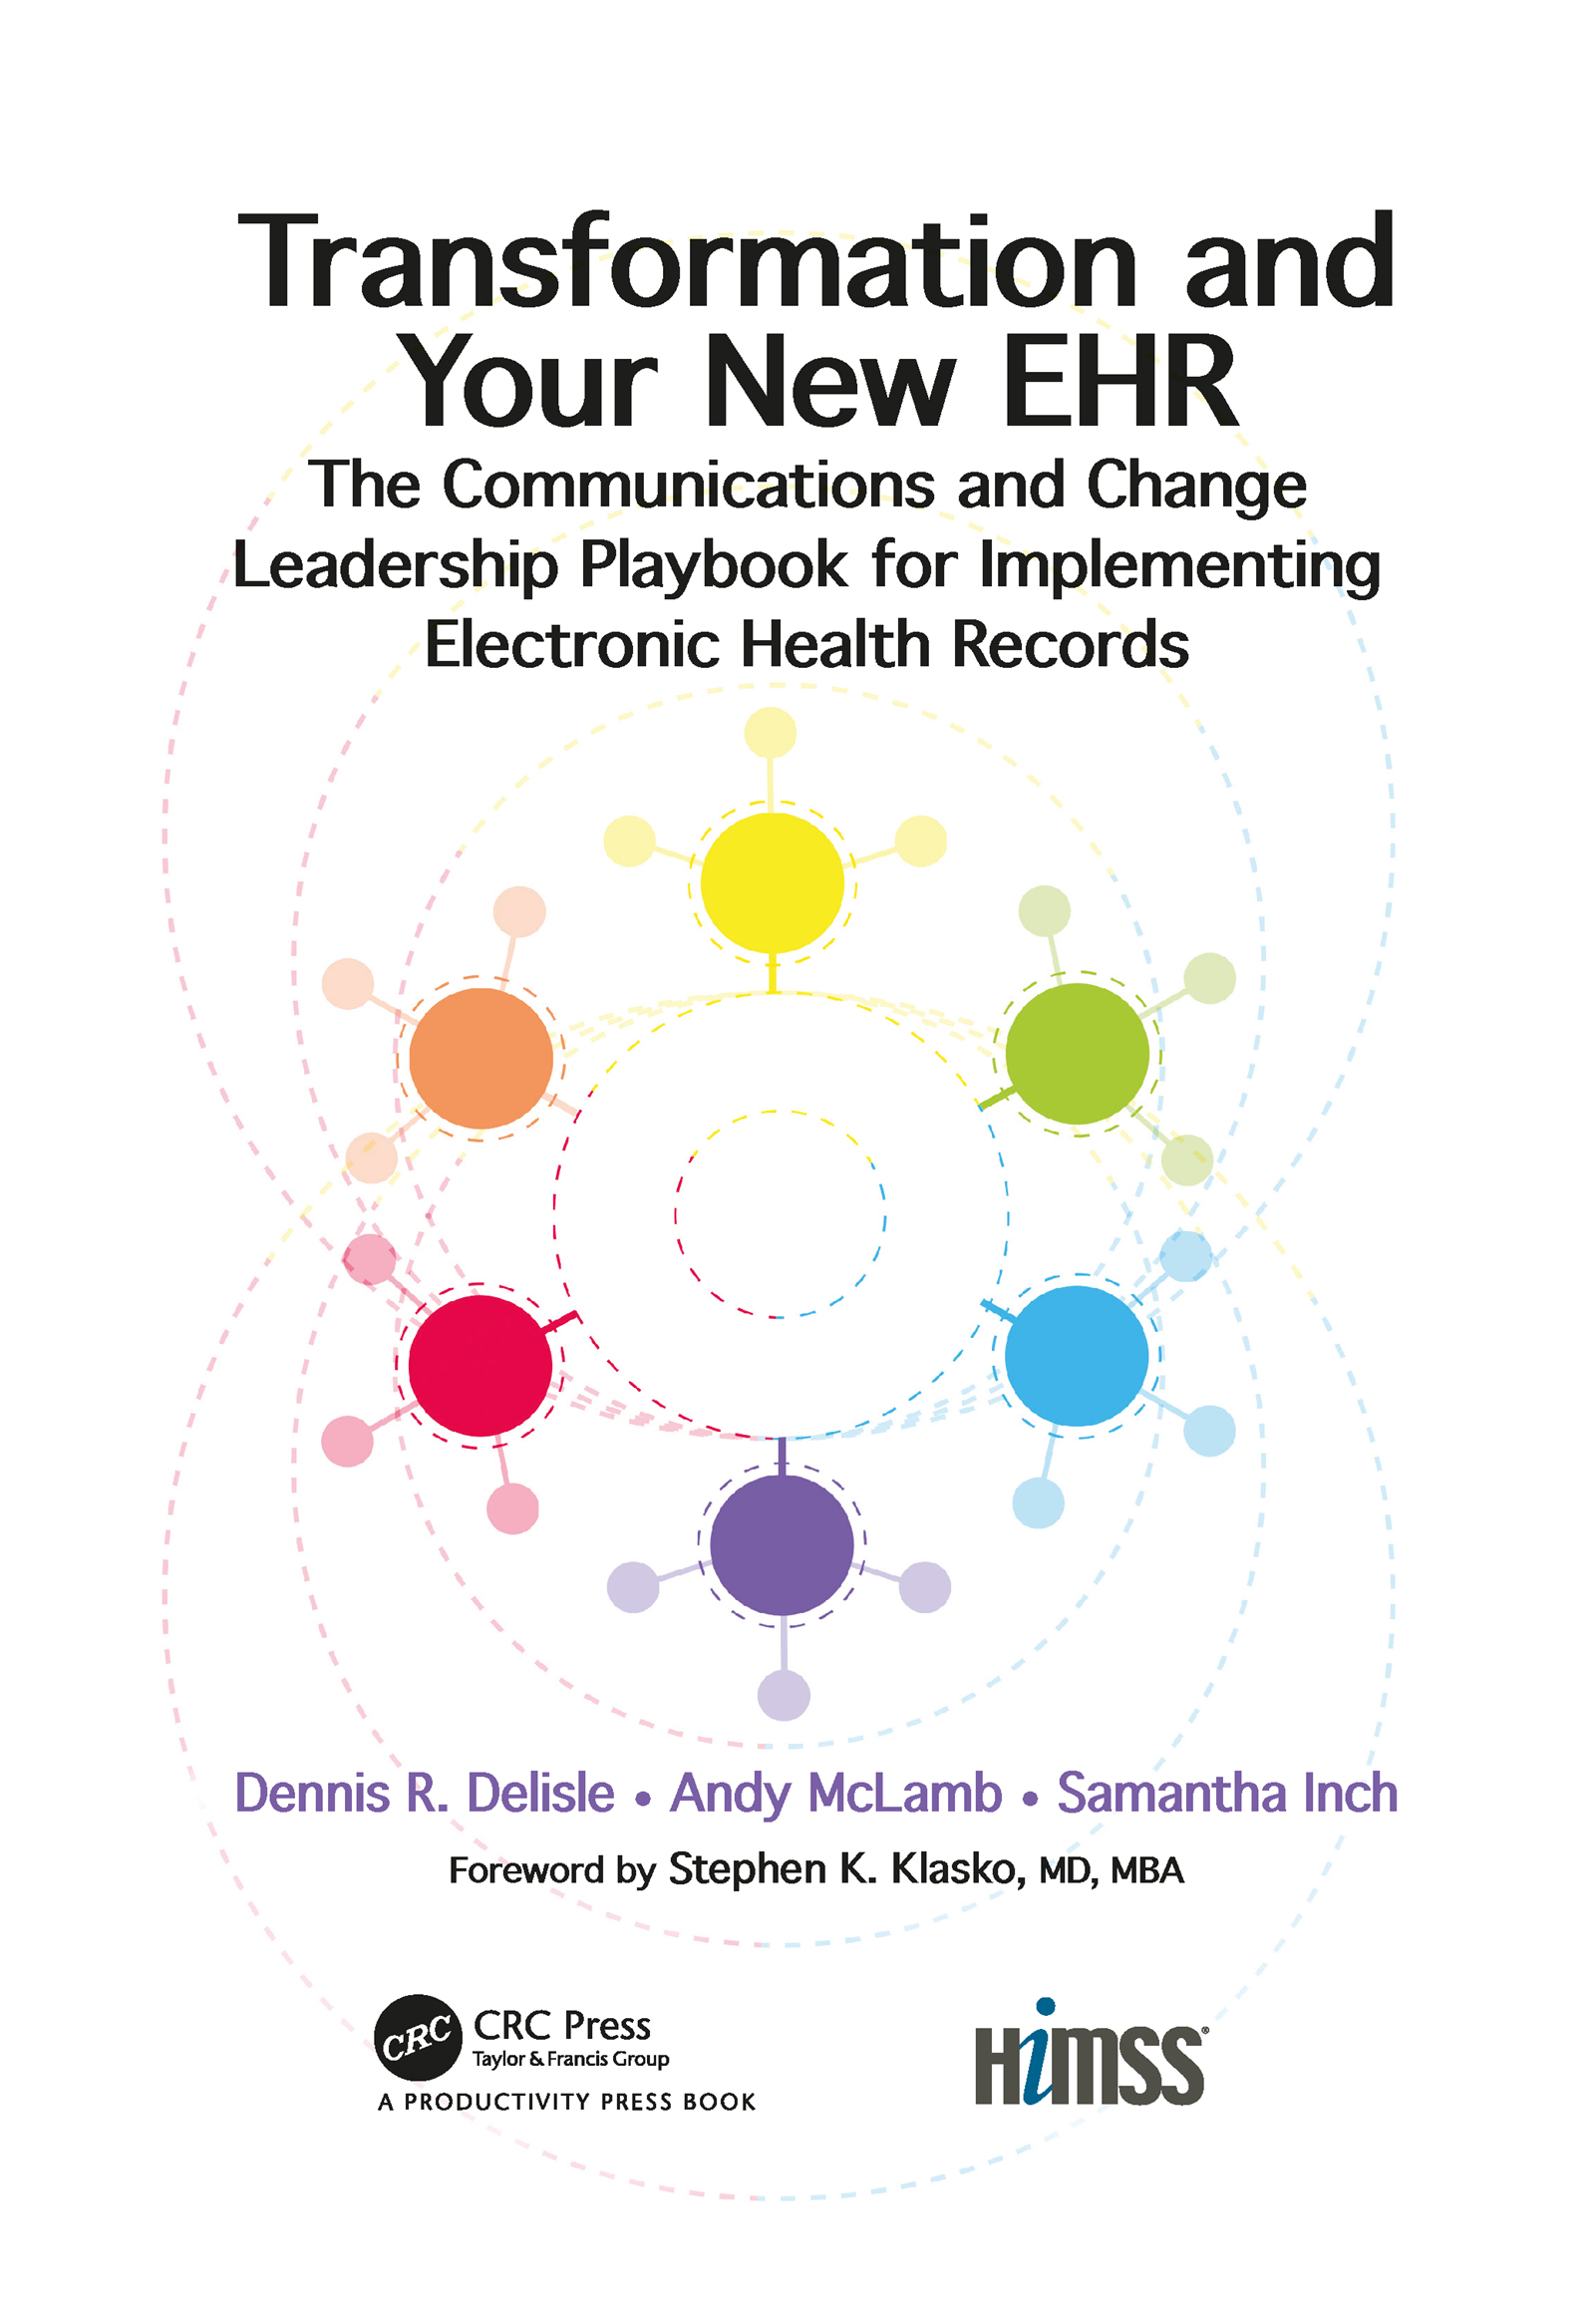 Transformation and Your New EHR